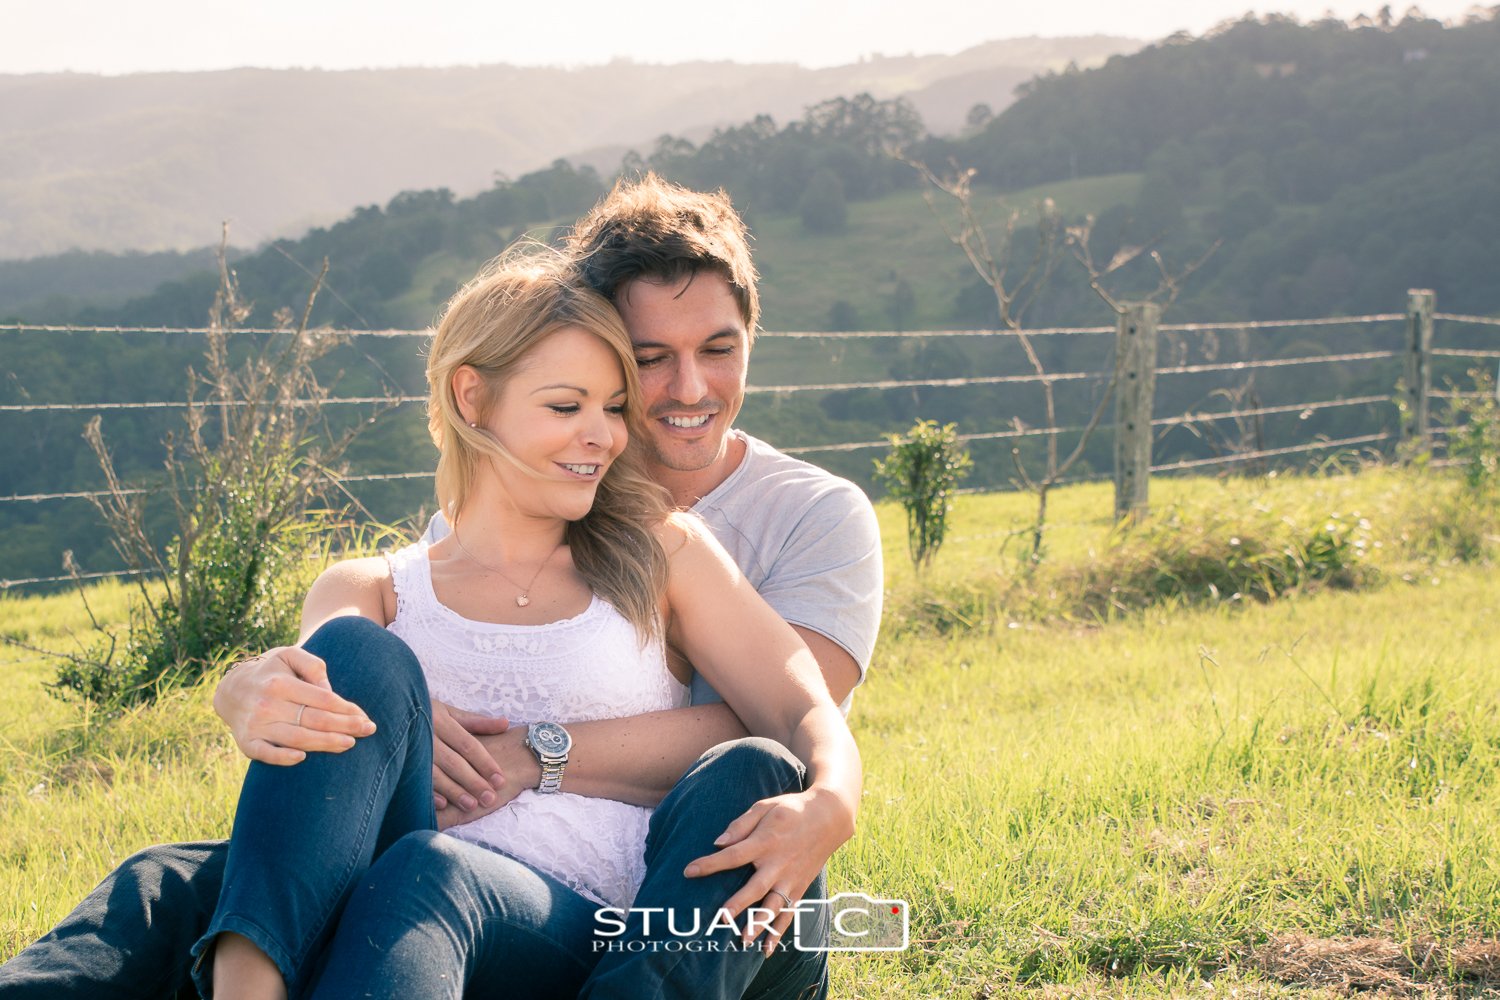 engaged couple sitting in grass in rural setting with fence behind